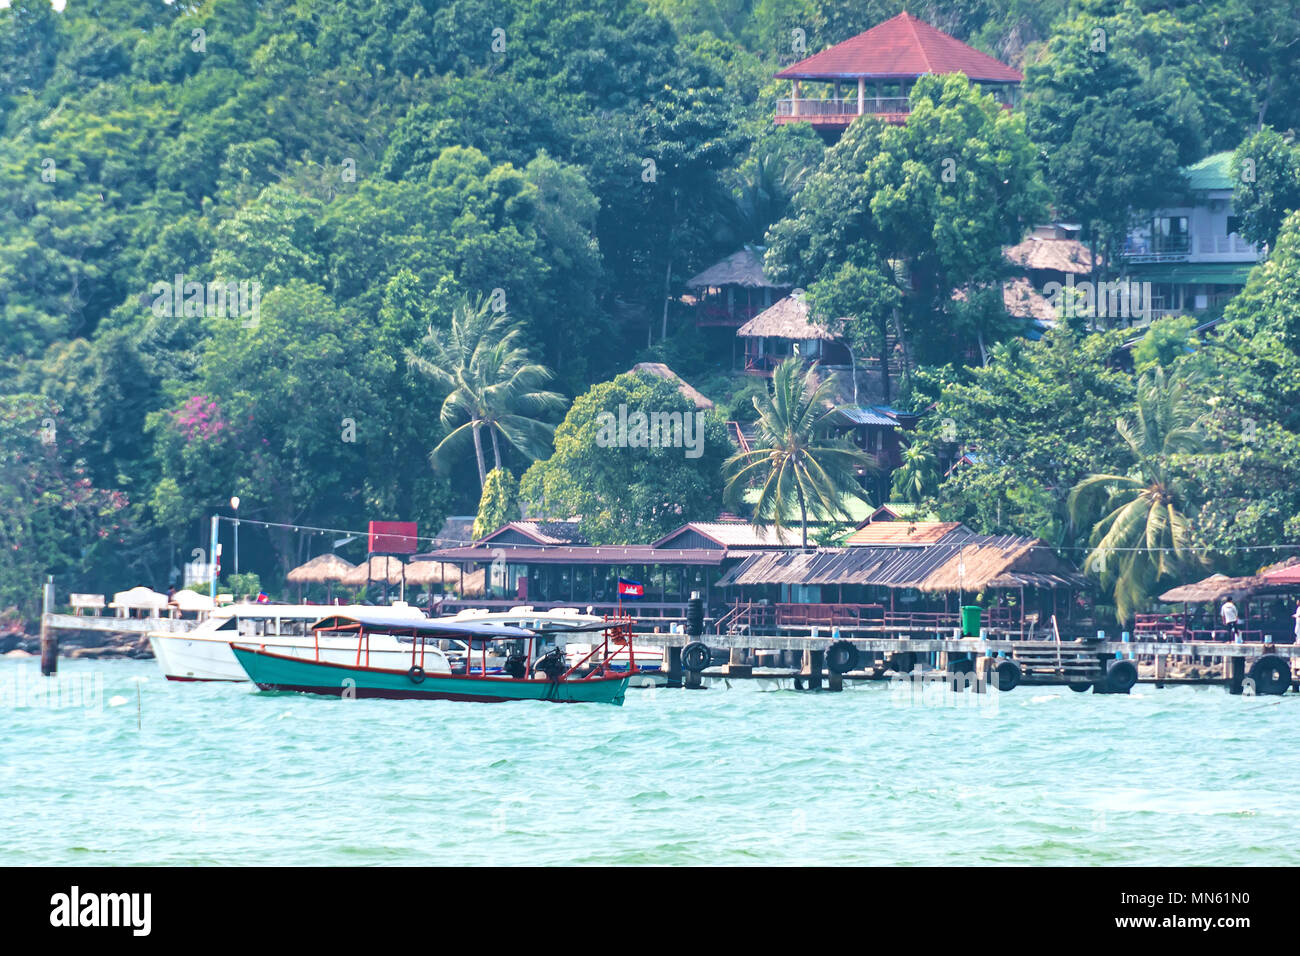 Beaches on the Cambodian coast and lush vegetation in the vicinity of the city of Sihanoukville. - Stock Image